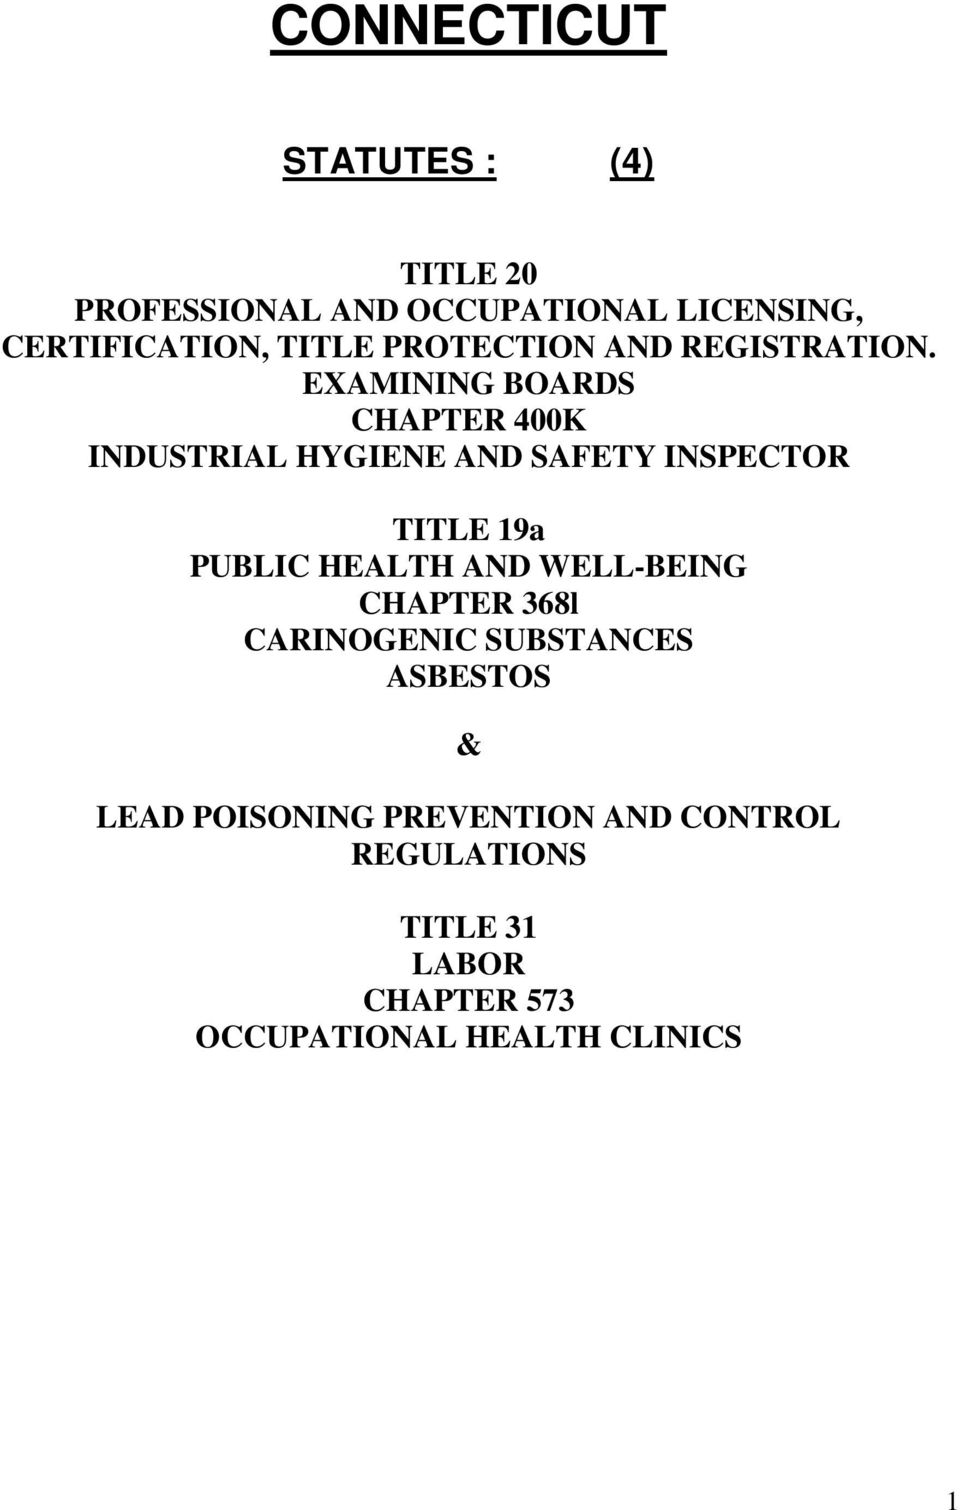 EXAMINING BOARDS CHAPTER 400K INDUSTRIAL HYGIENE AND SAFETY INSPECTOR TITLE 19a PUBLIC HEALTH AND